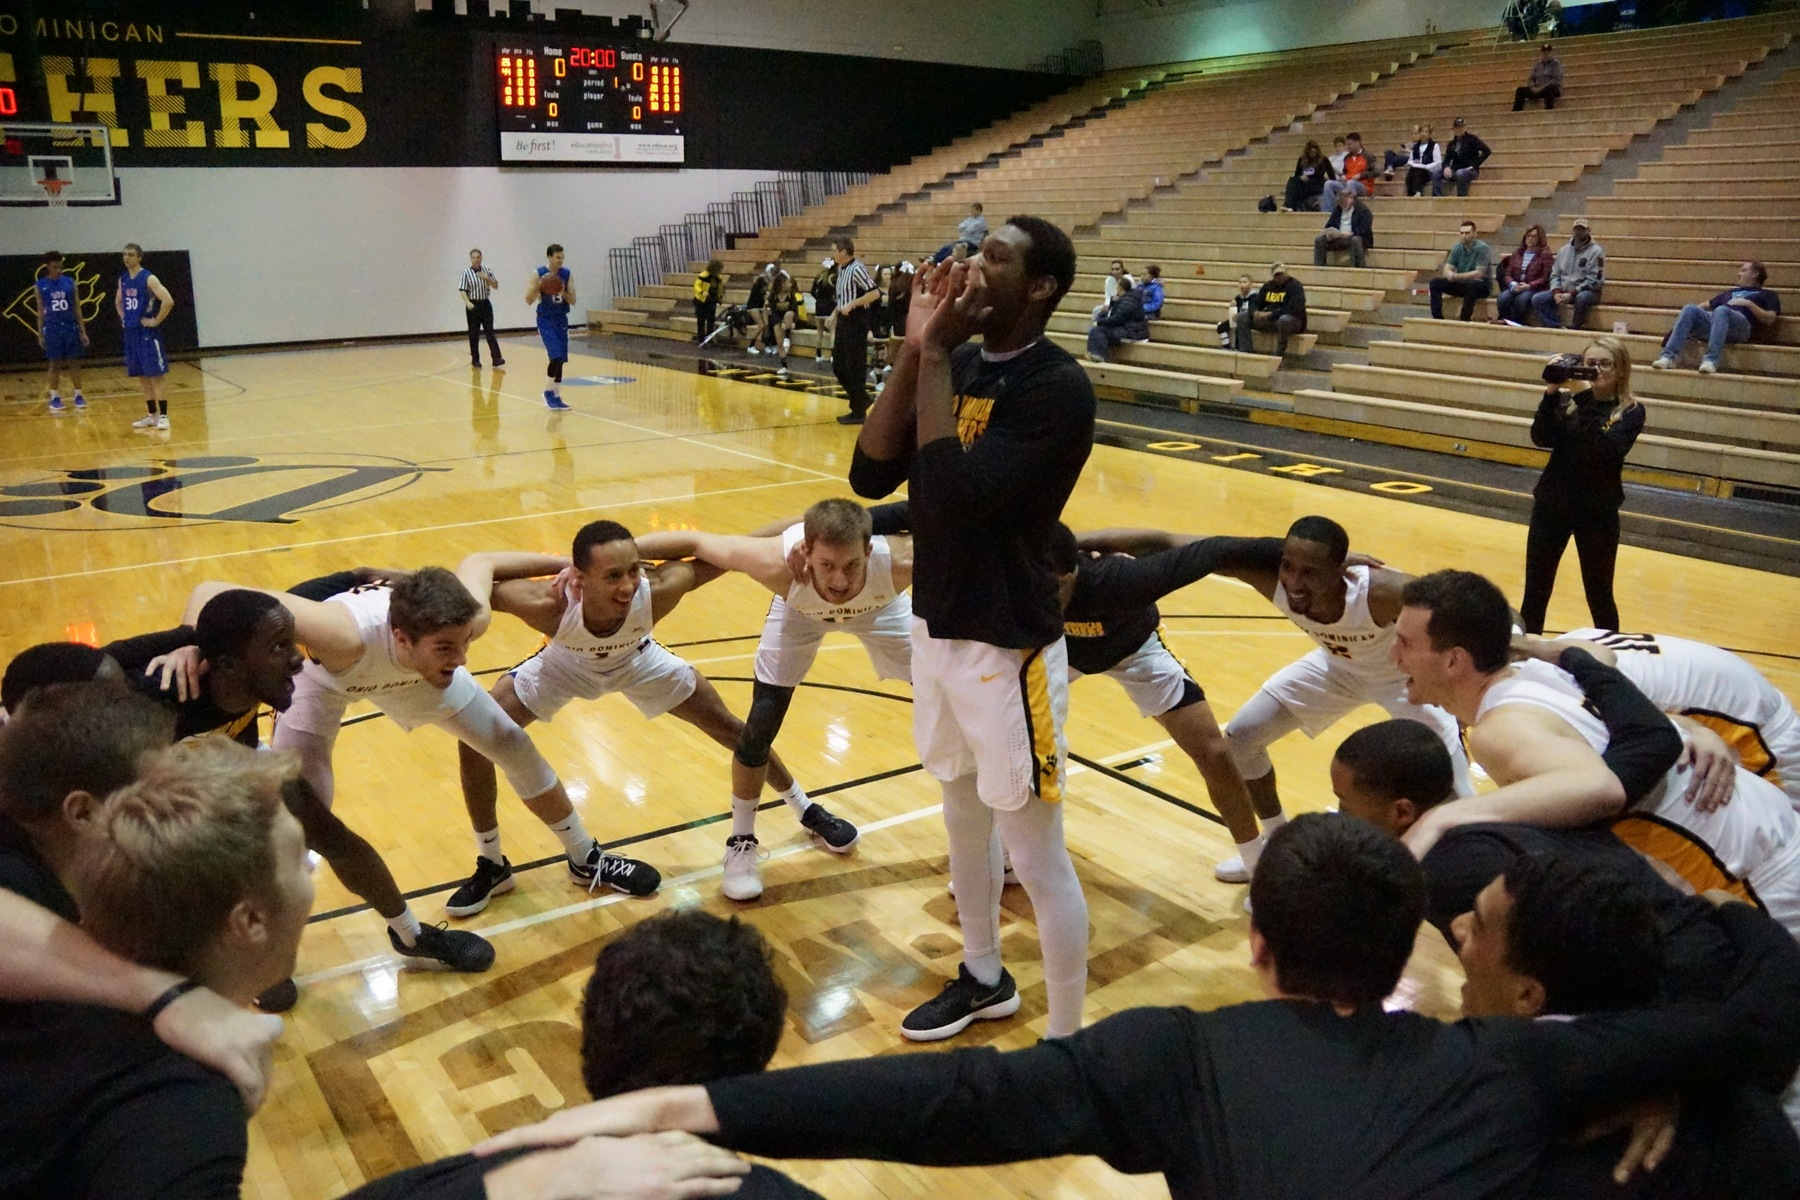 Men's Basketball Outlasts Storm, 81-77 (OT) To Earn Great Midwest Tournament Berth